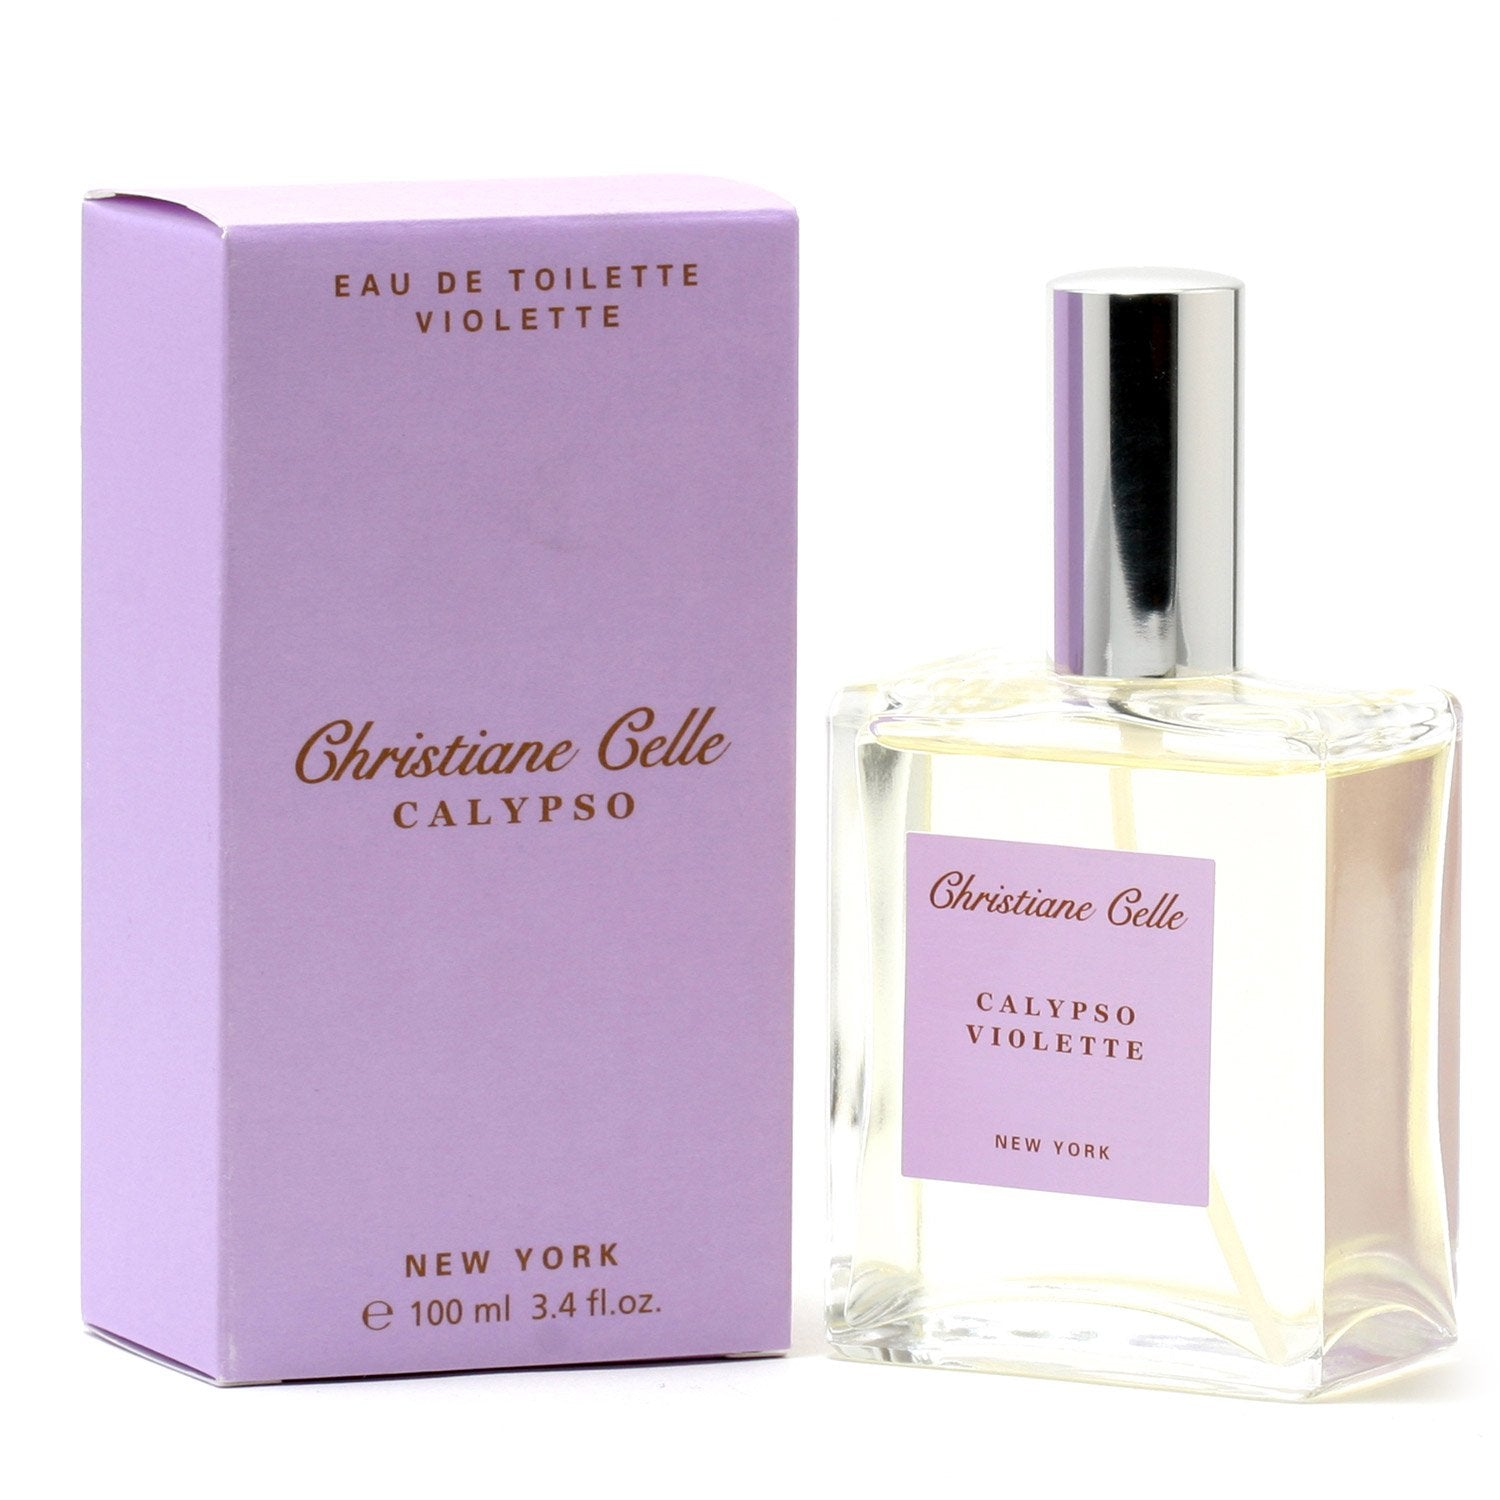 Perfume - CALYPSO VIOLETTE FOR WOMEN BY CHRISTIANE CELLE - EAU DE TOILETTE SPRAY, 3.4 OZ